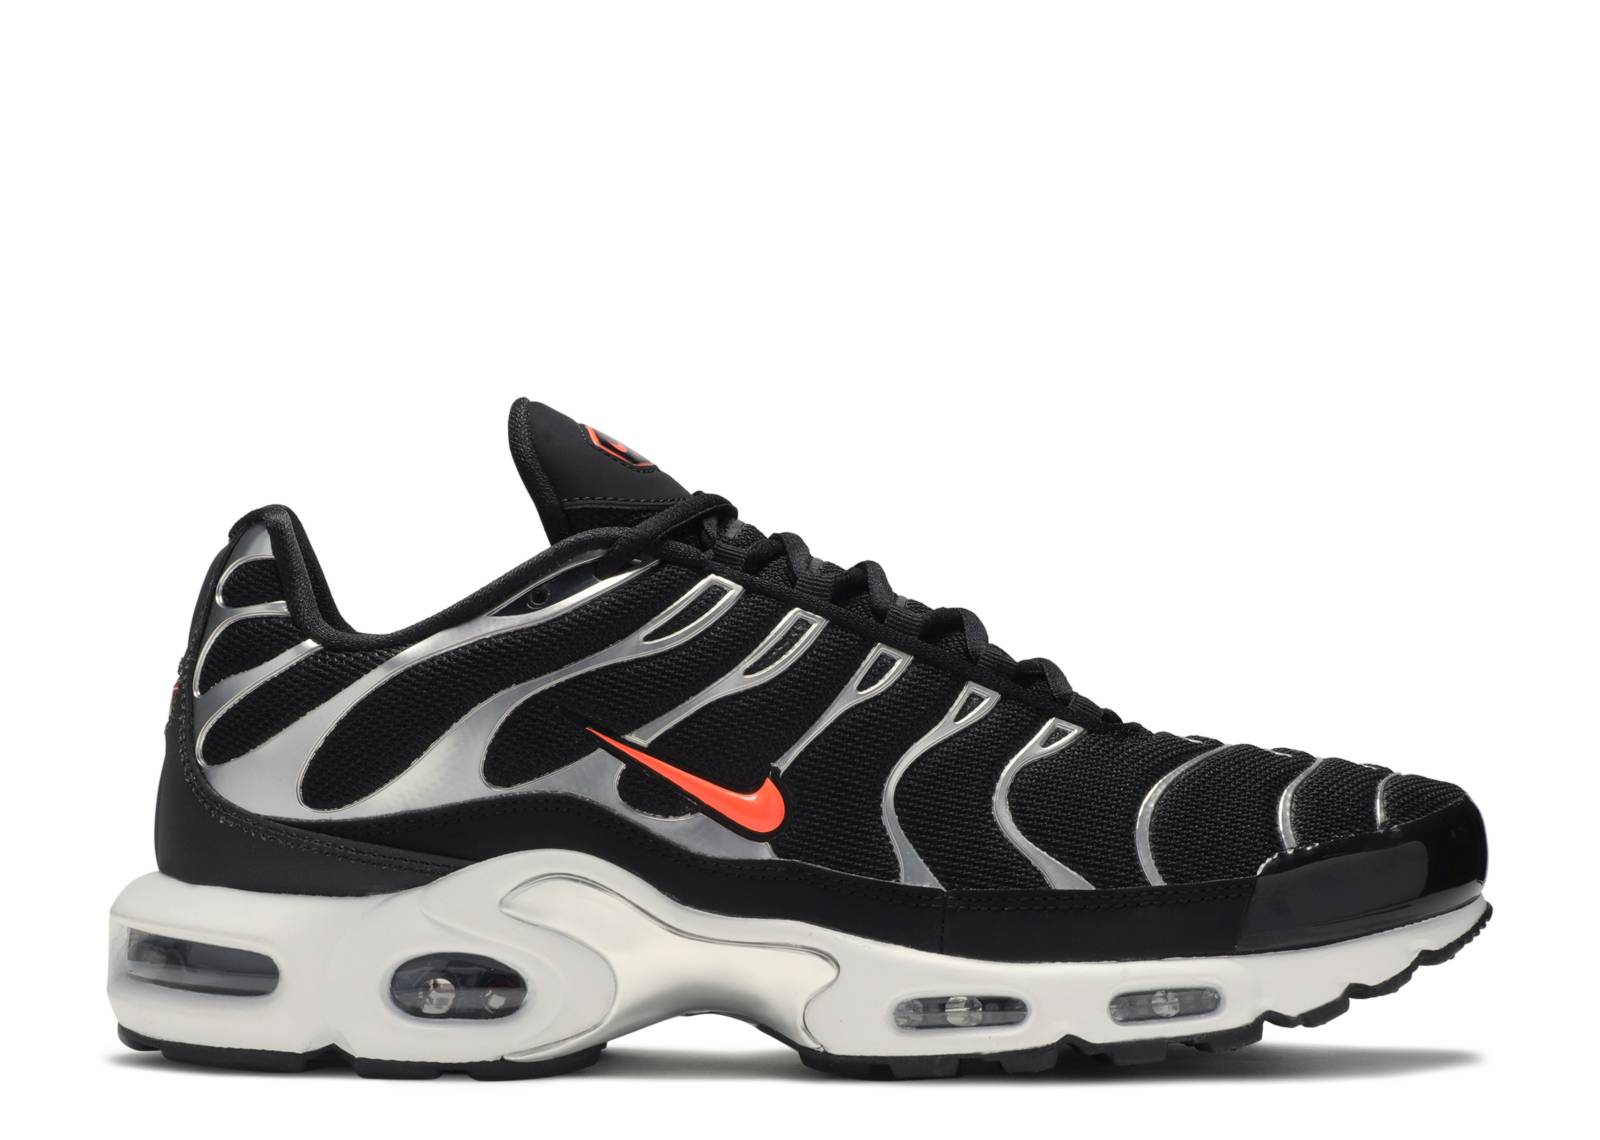 reputable site c02ec da32c Air Max Plus 'Black Orange'